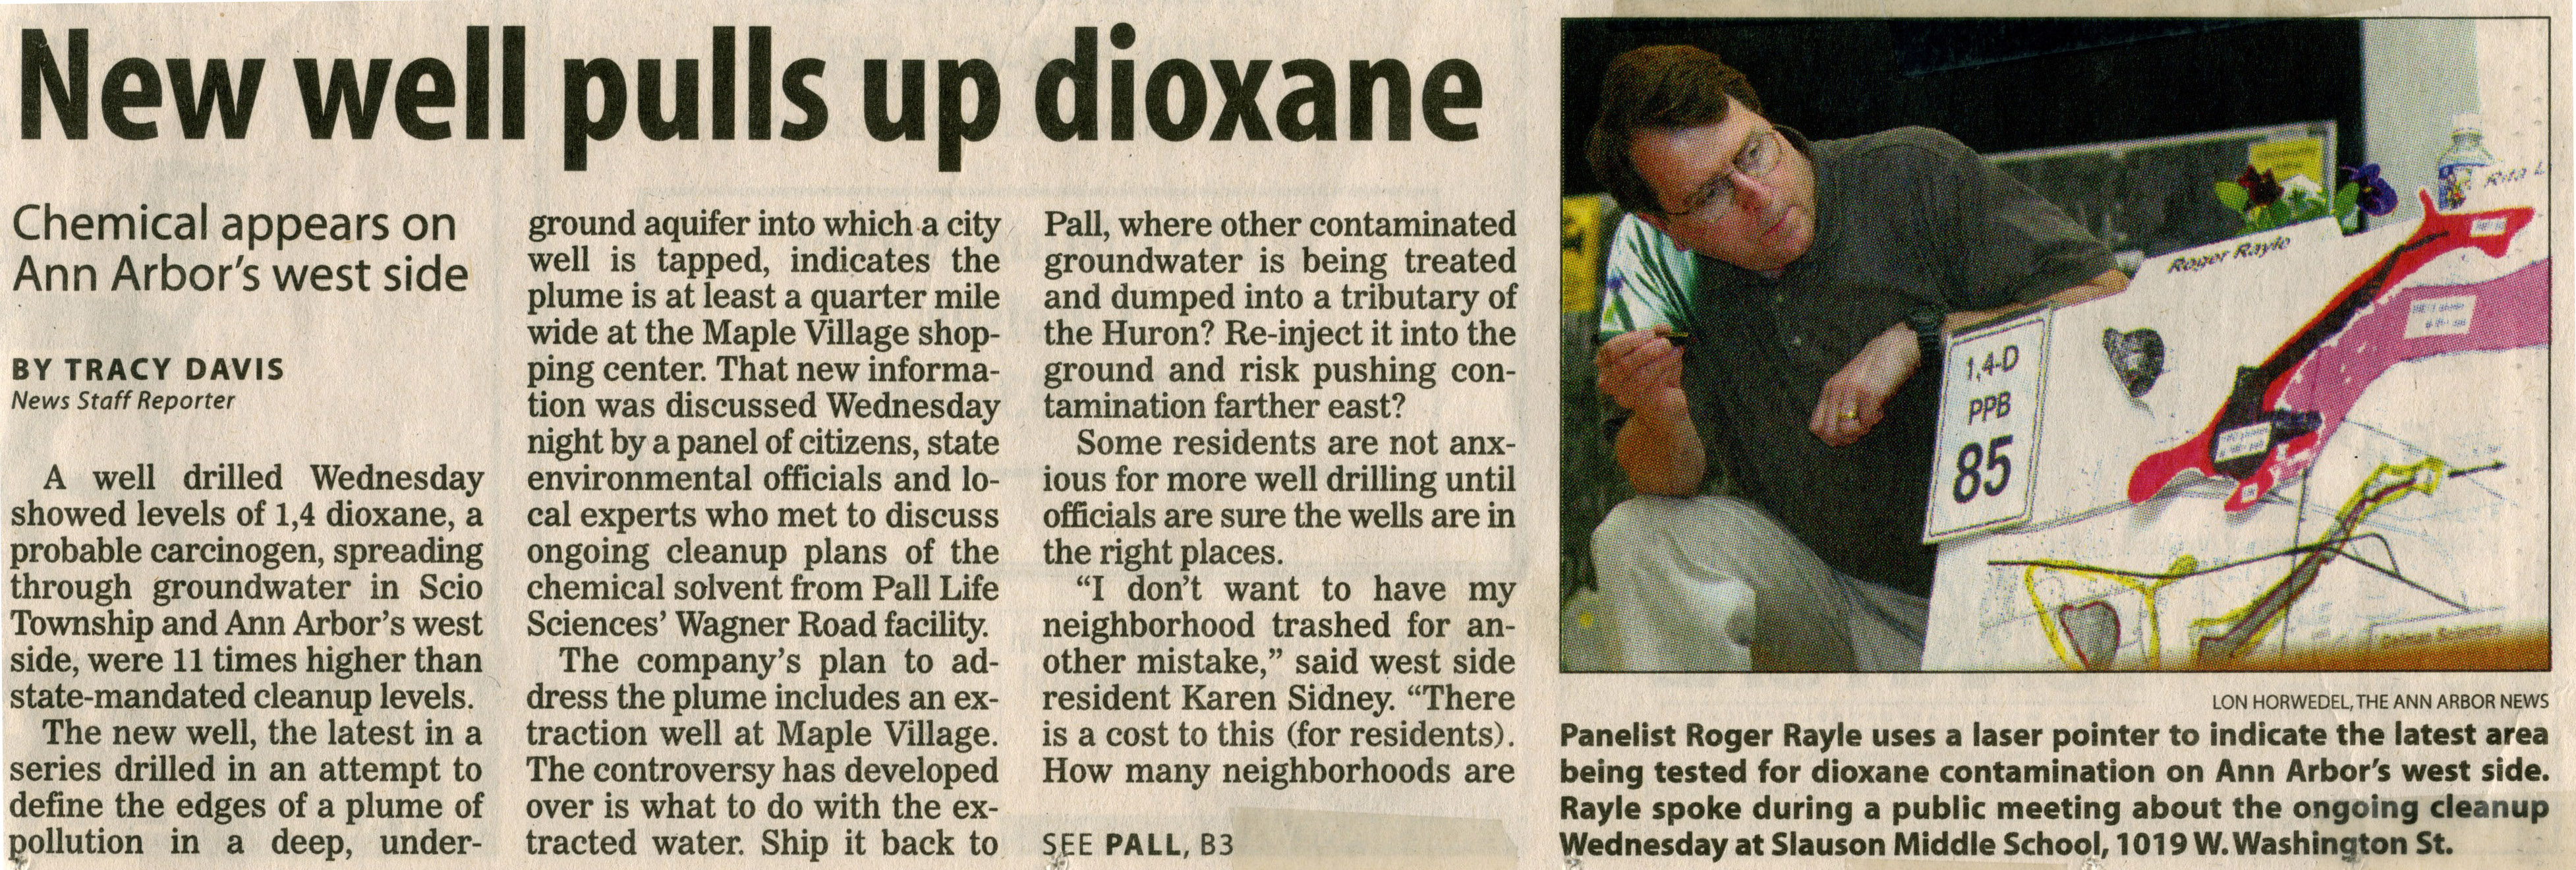 New Well Pulls Up Dioxane image